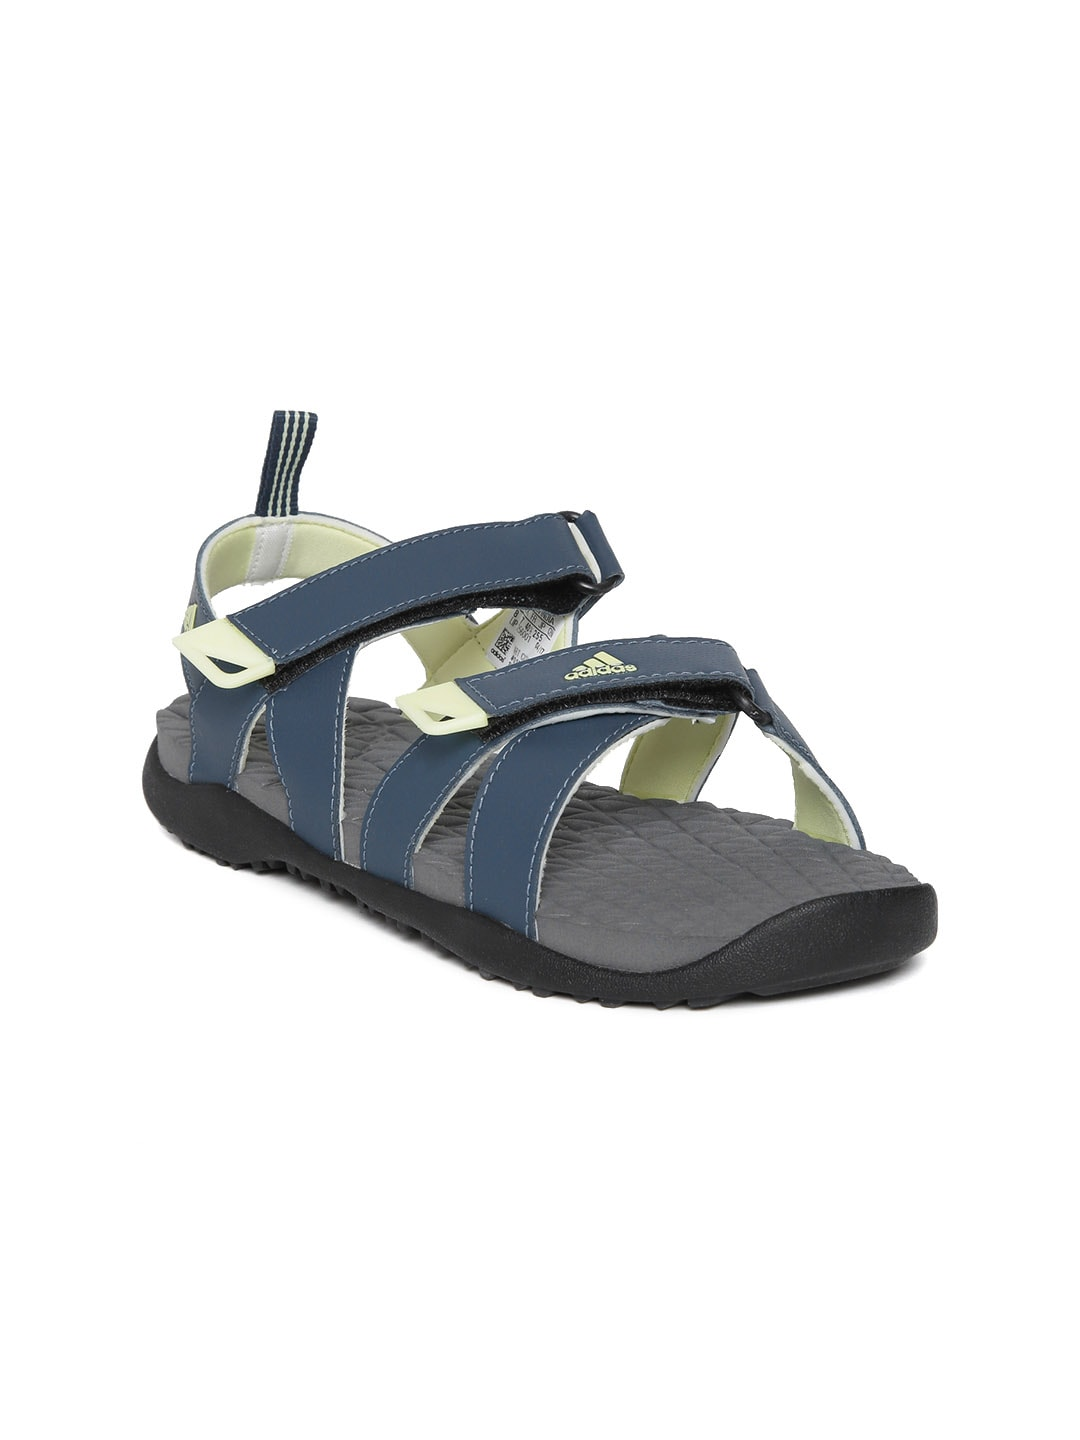 1797968e053b Sandal In Adidas Sports - Buy Sandal In Adidas Sports online in India